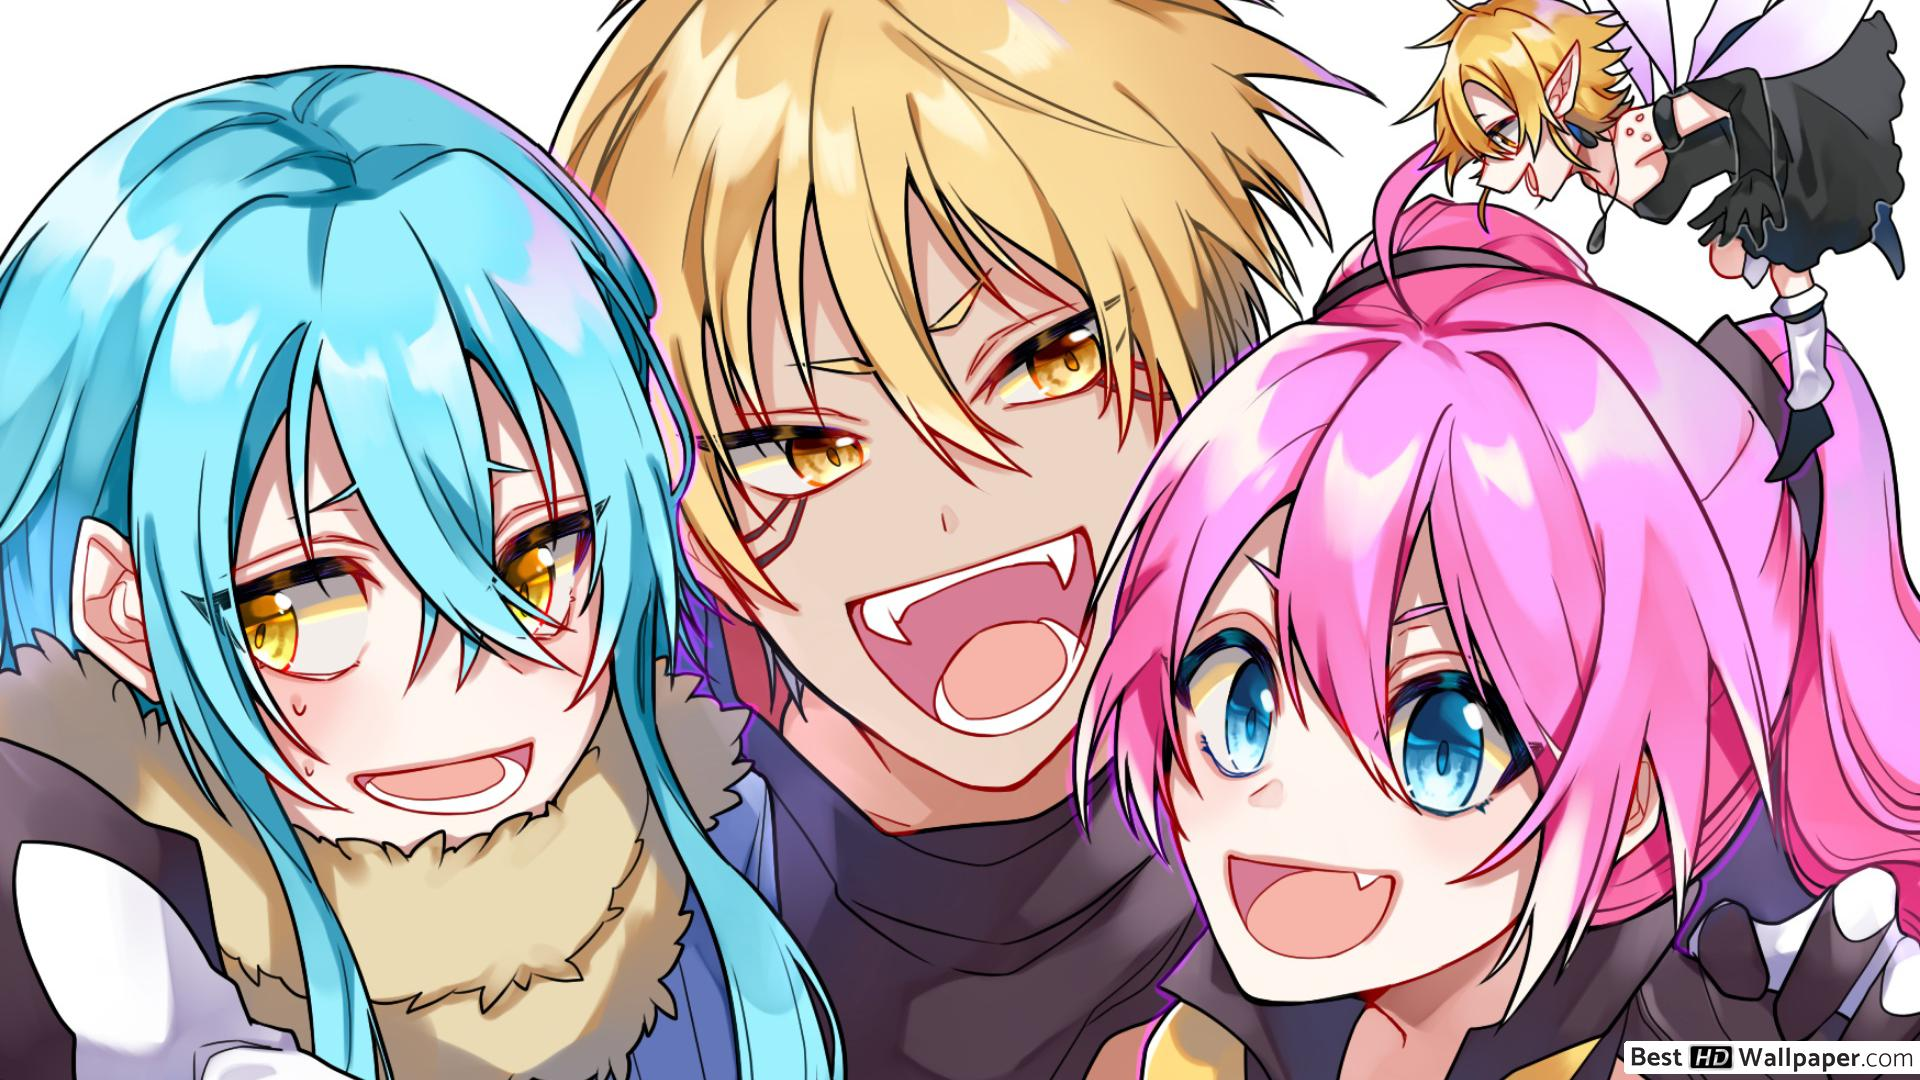 That Time I Got Reincarnated As A Slime Wallpaper Hd Posted By